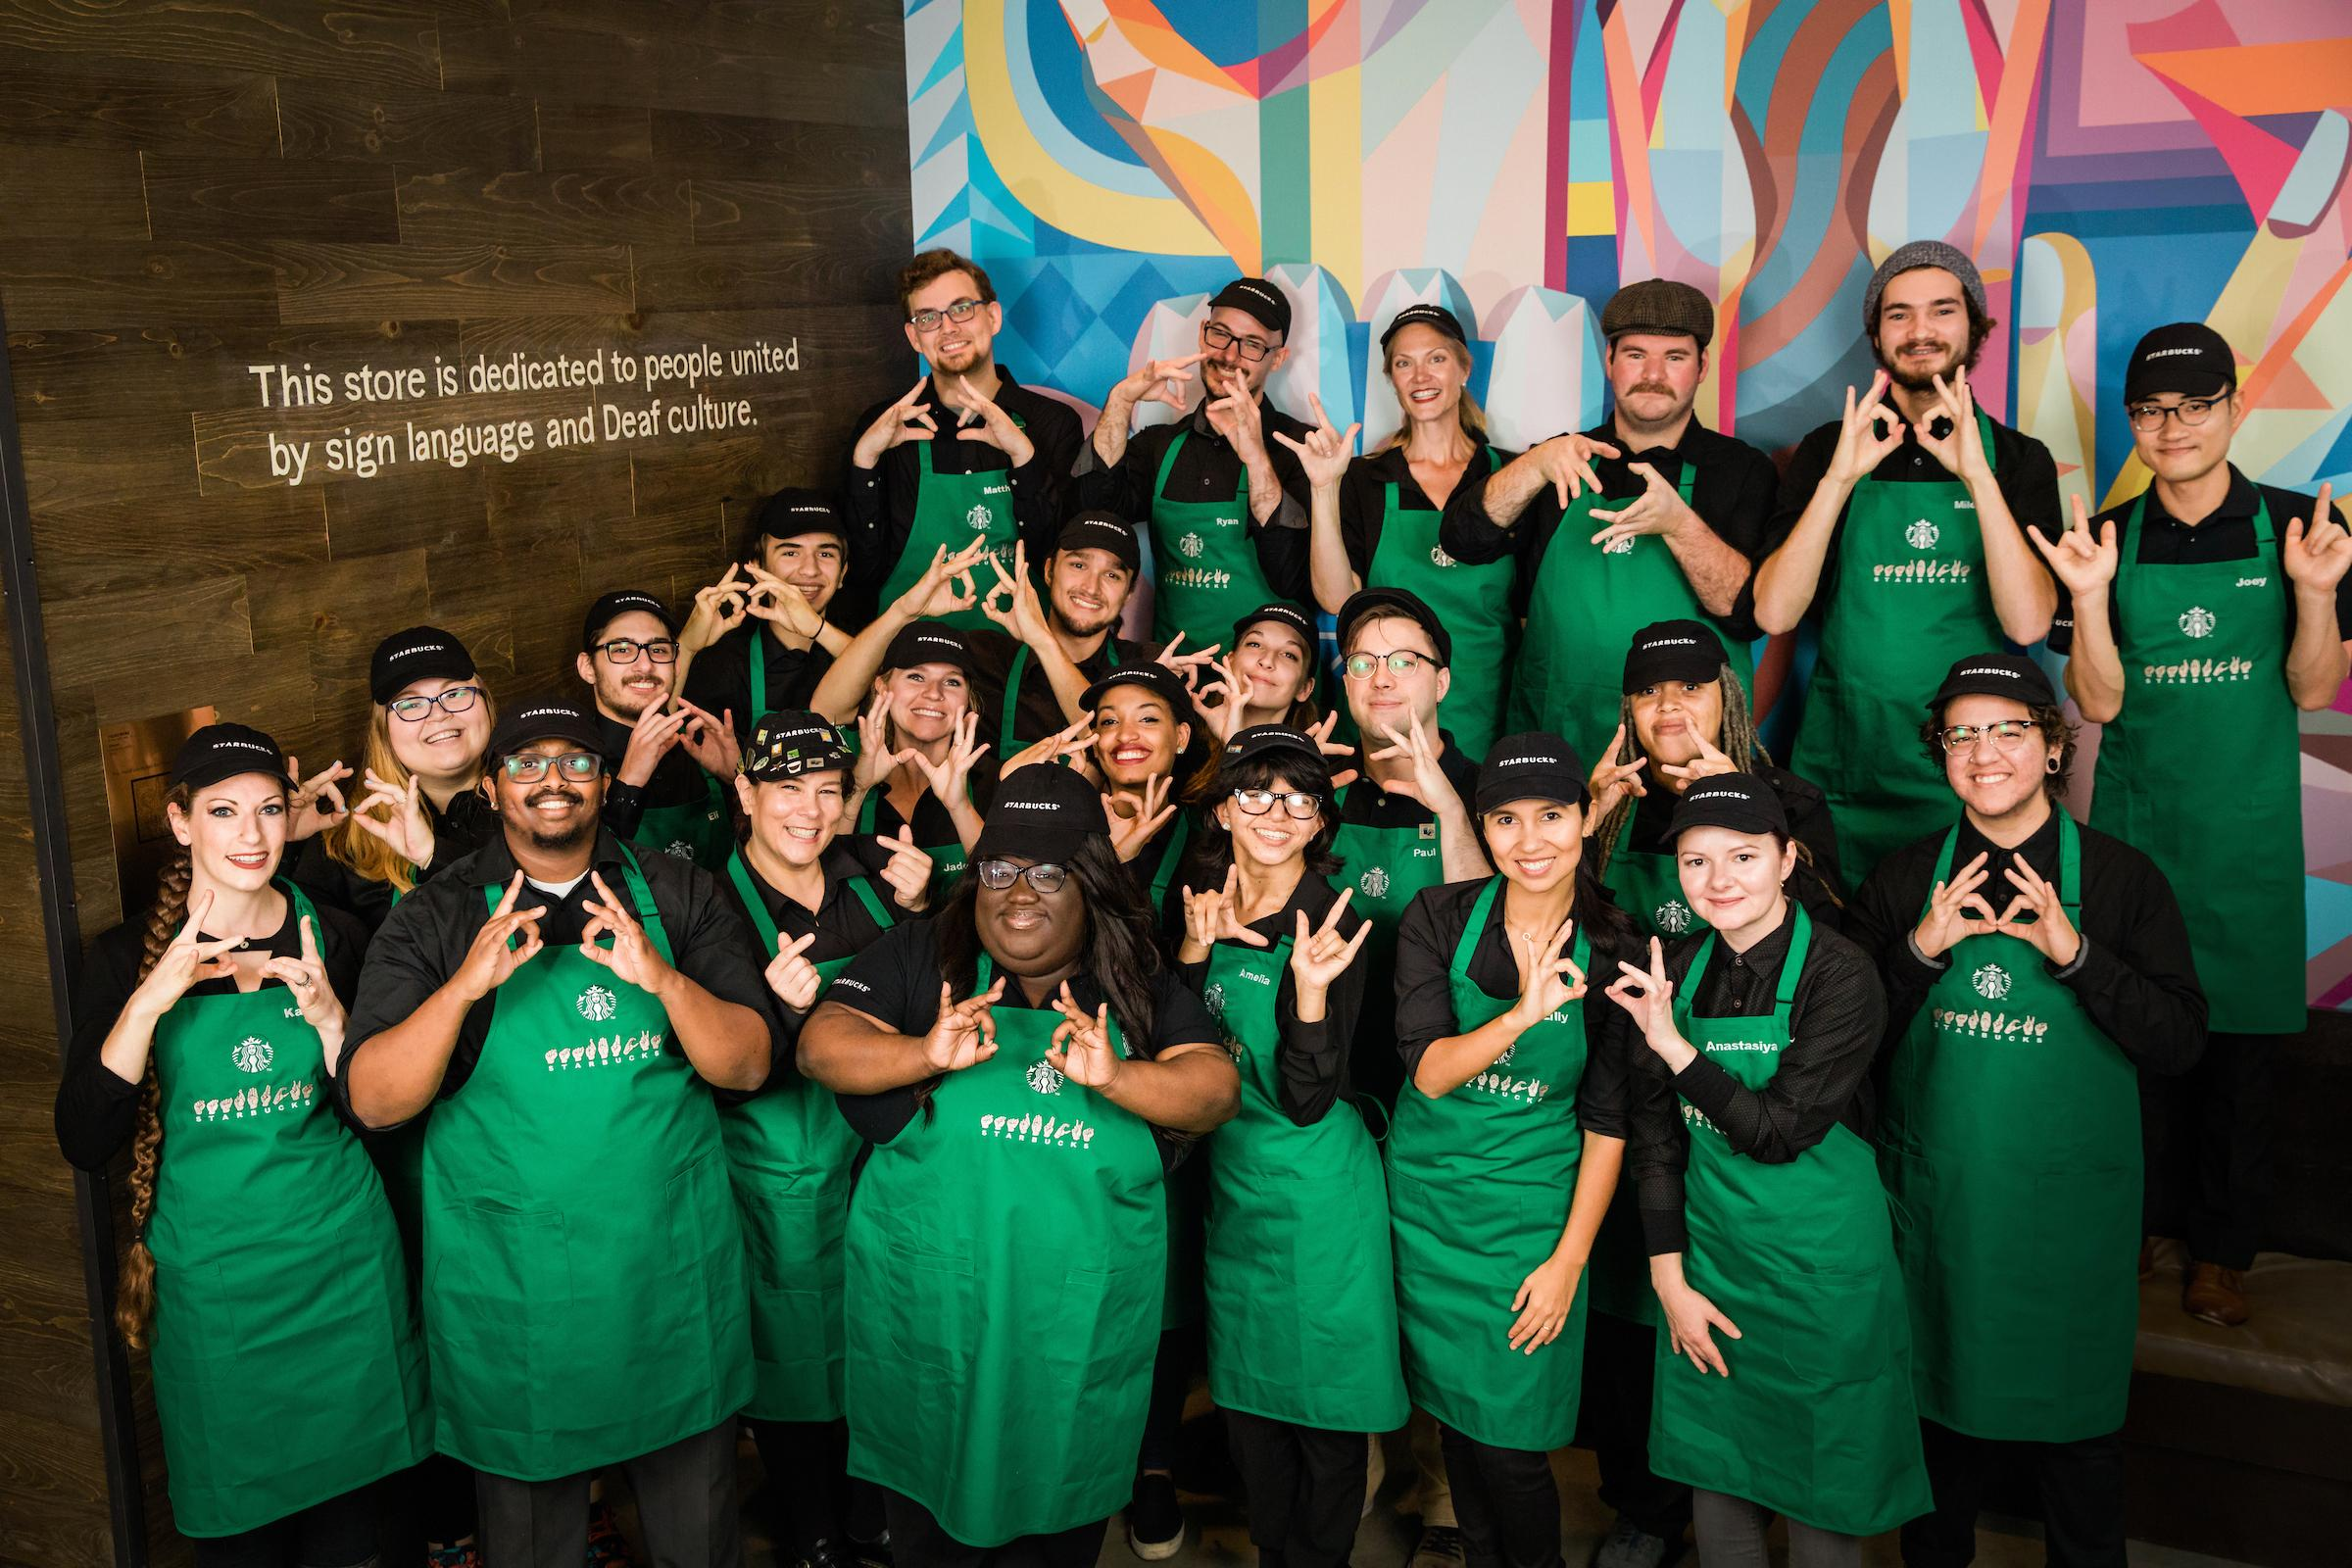 The new employees pose for a photo.{ }{ }(Image: Joshua Trujillo, Starbucks)